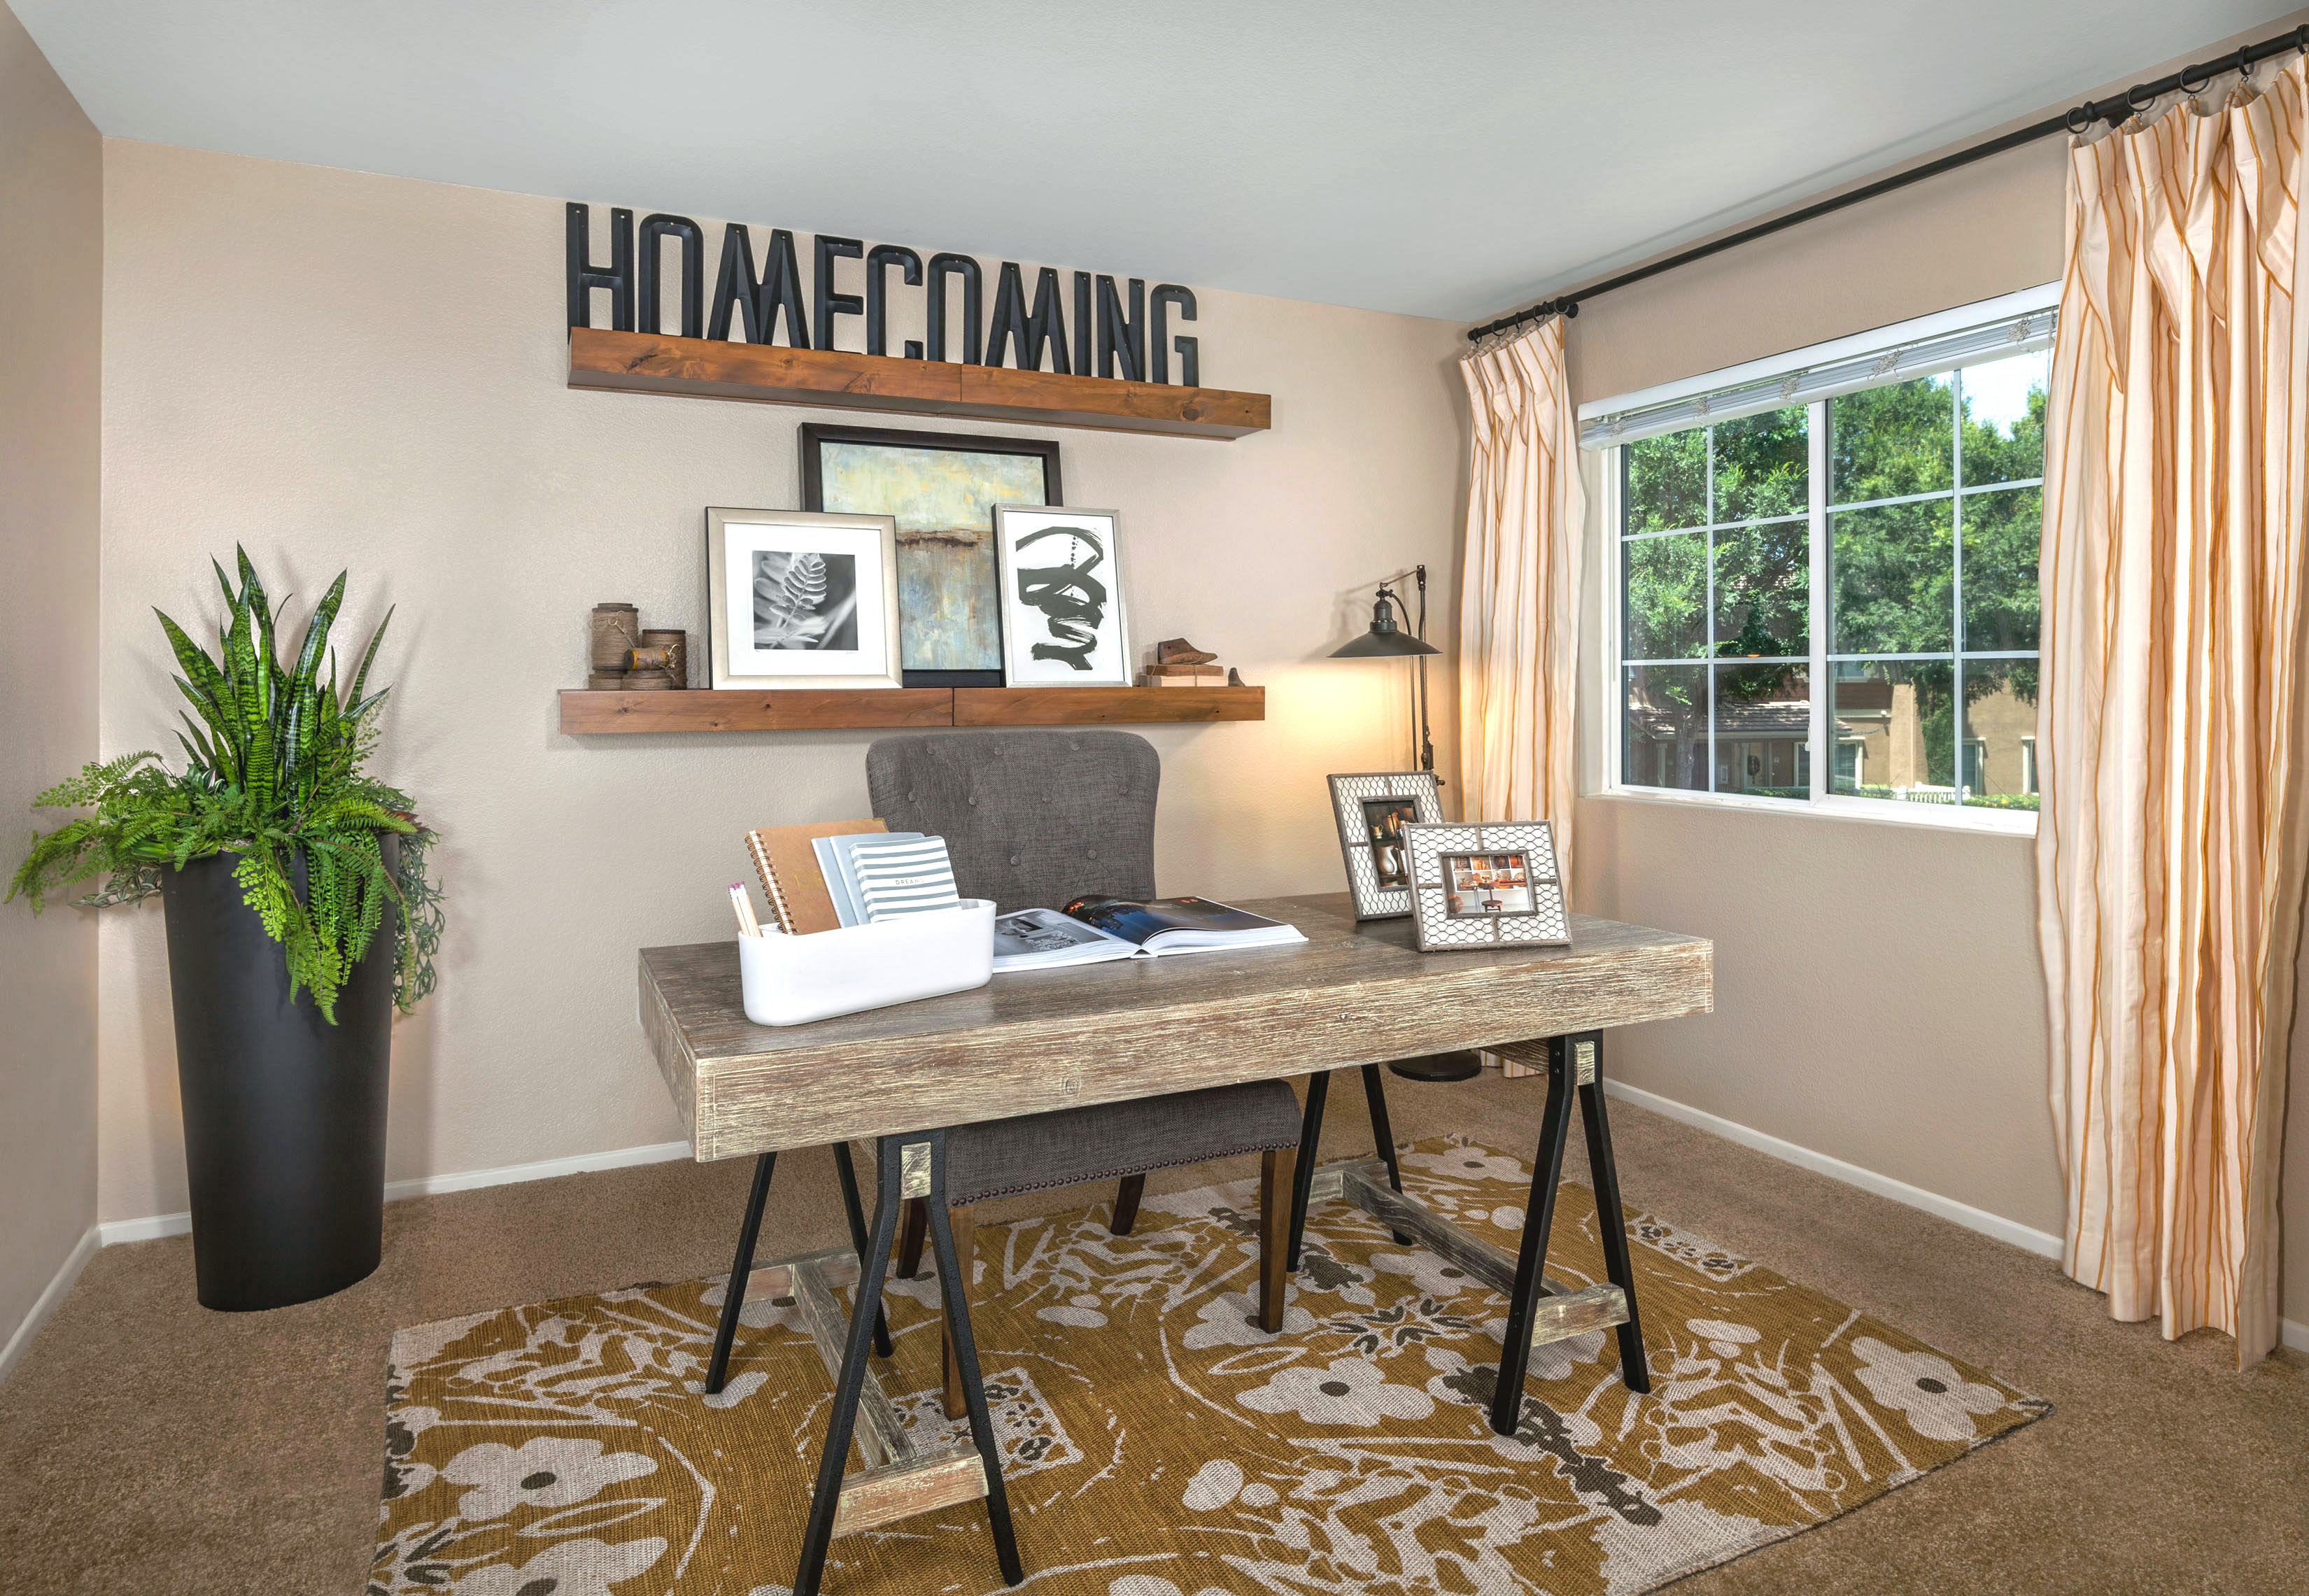 homecoming at eastvale | eastvale apartments